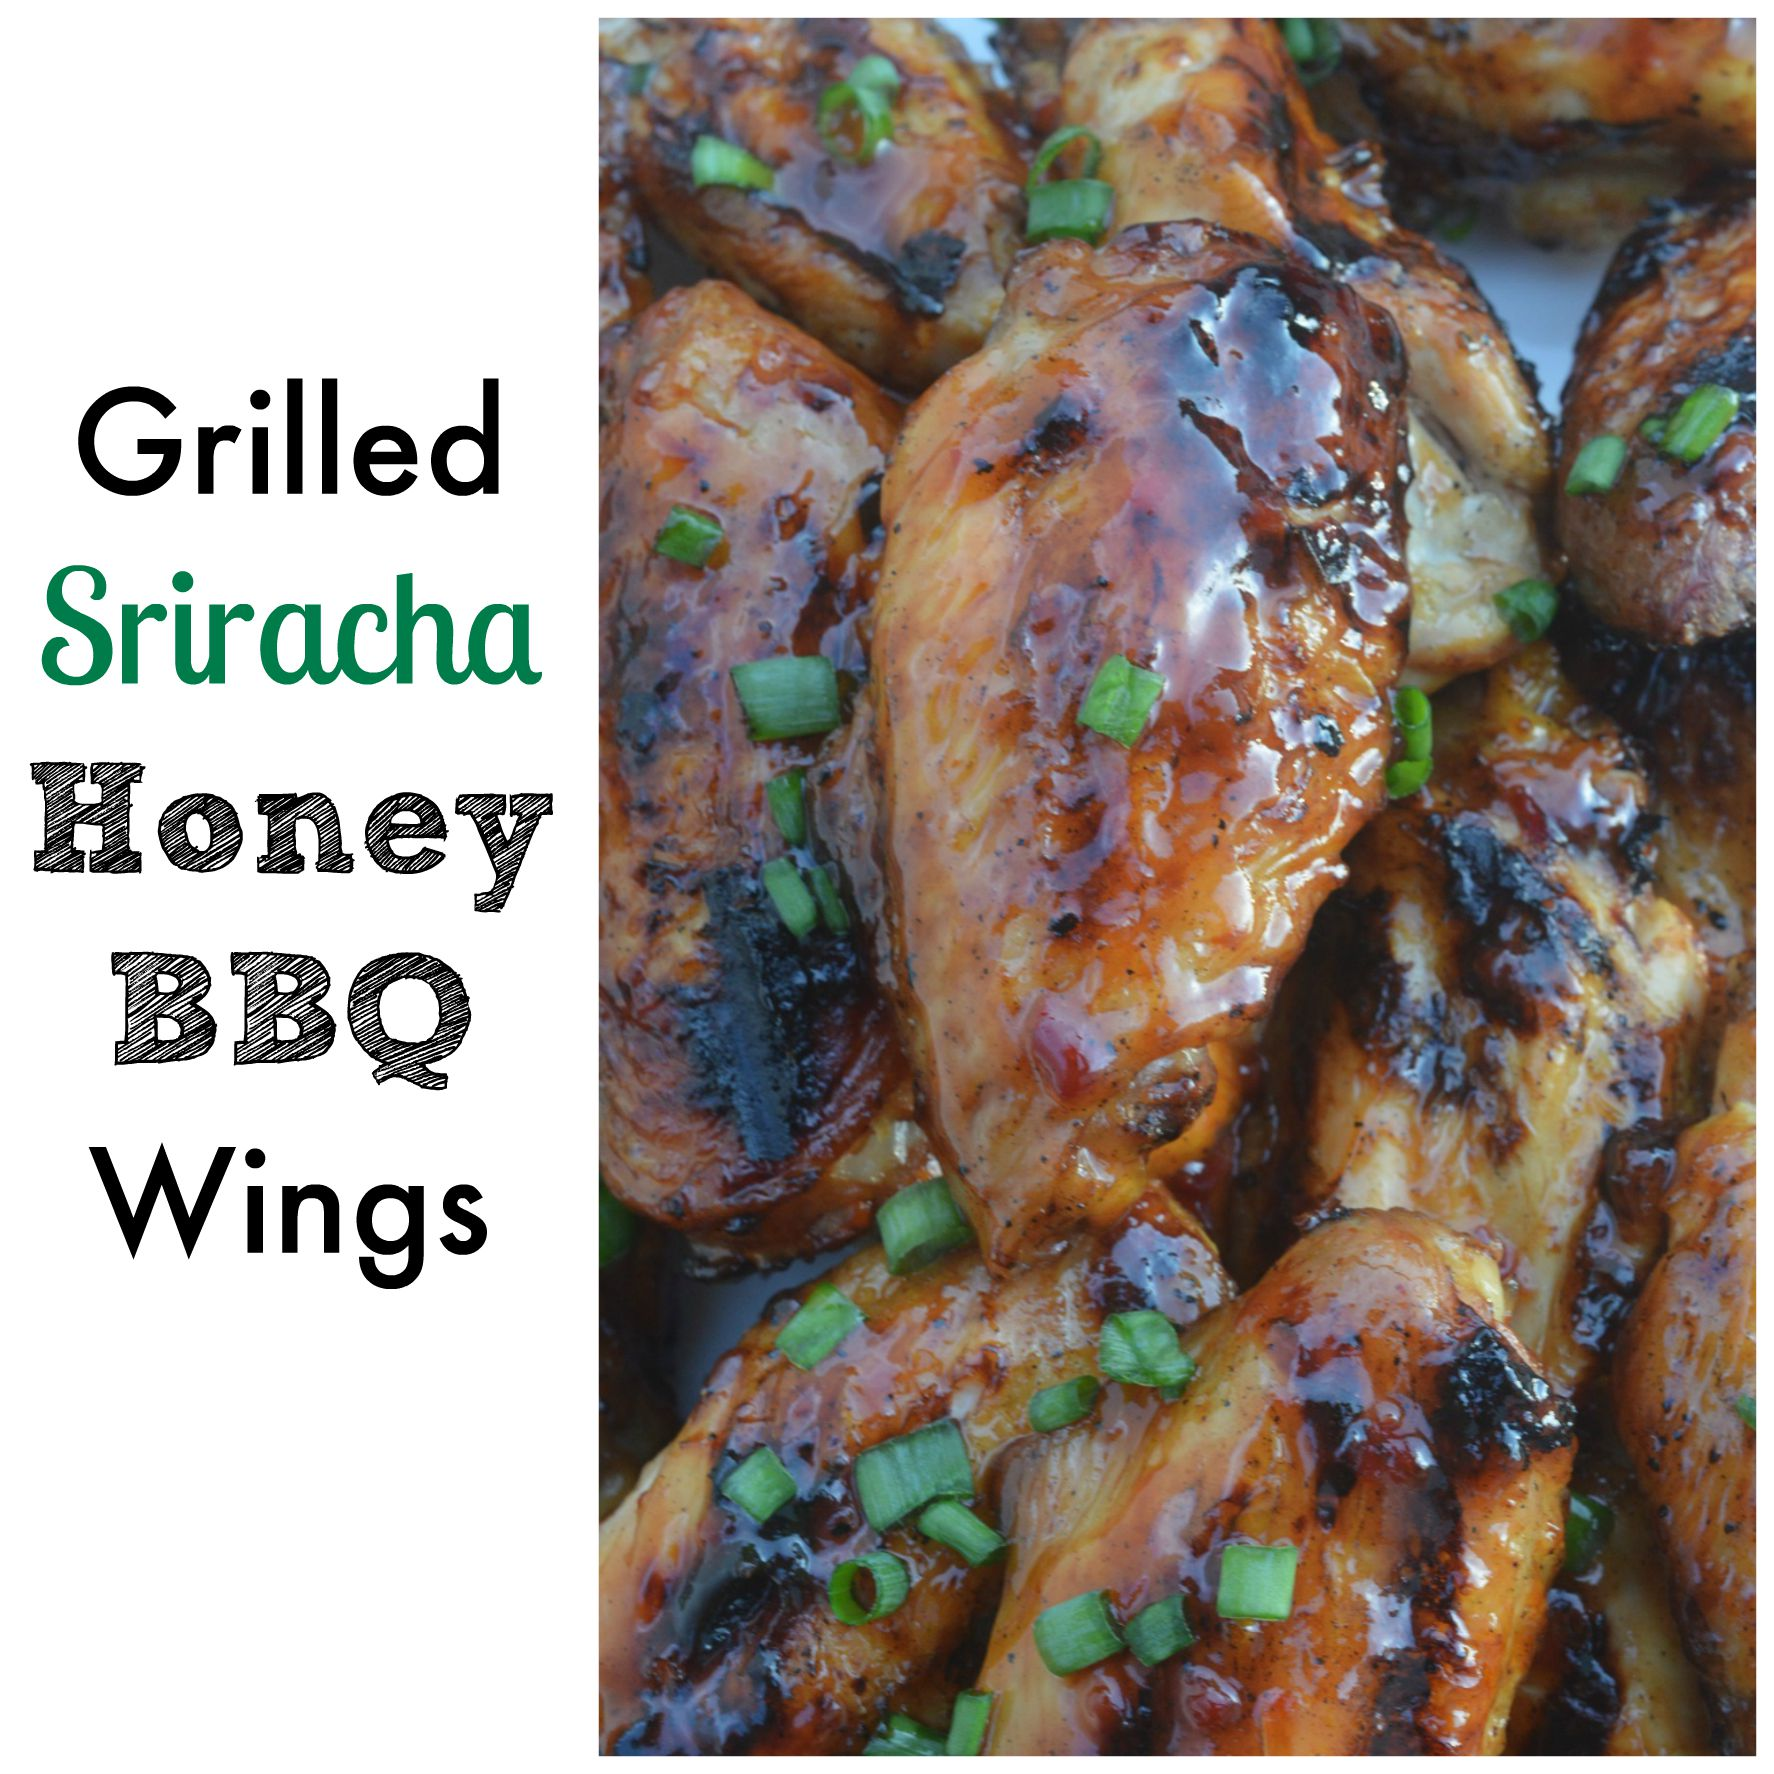 Grilled Sriracha Honey BBQ Wings